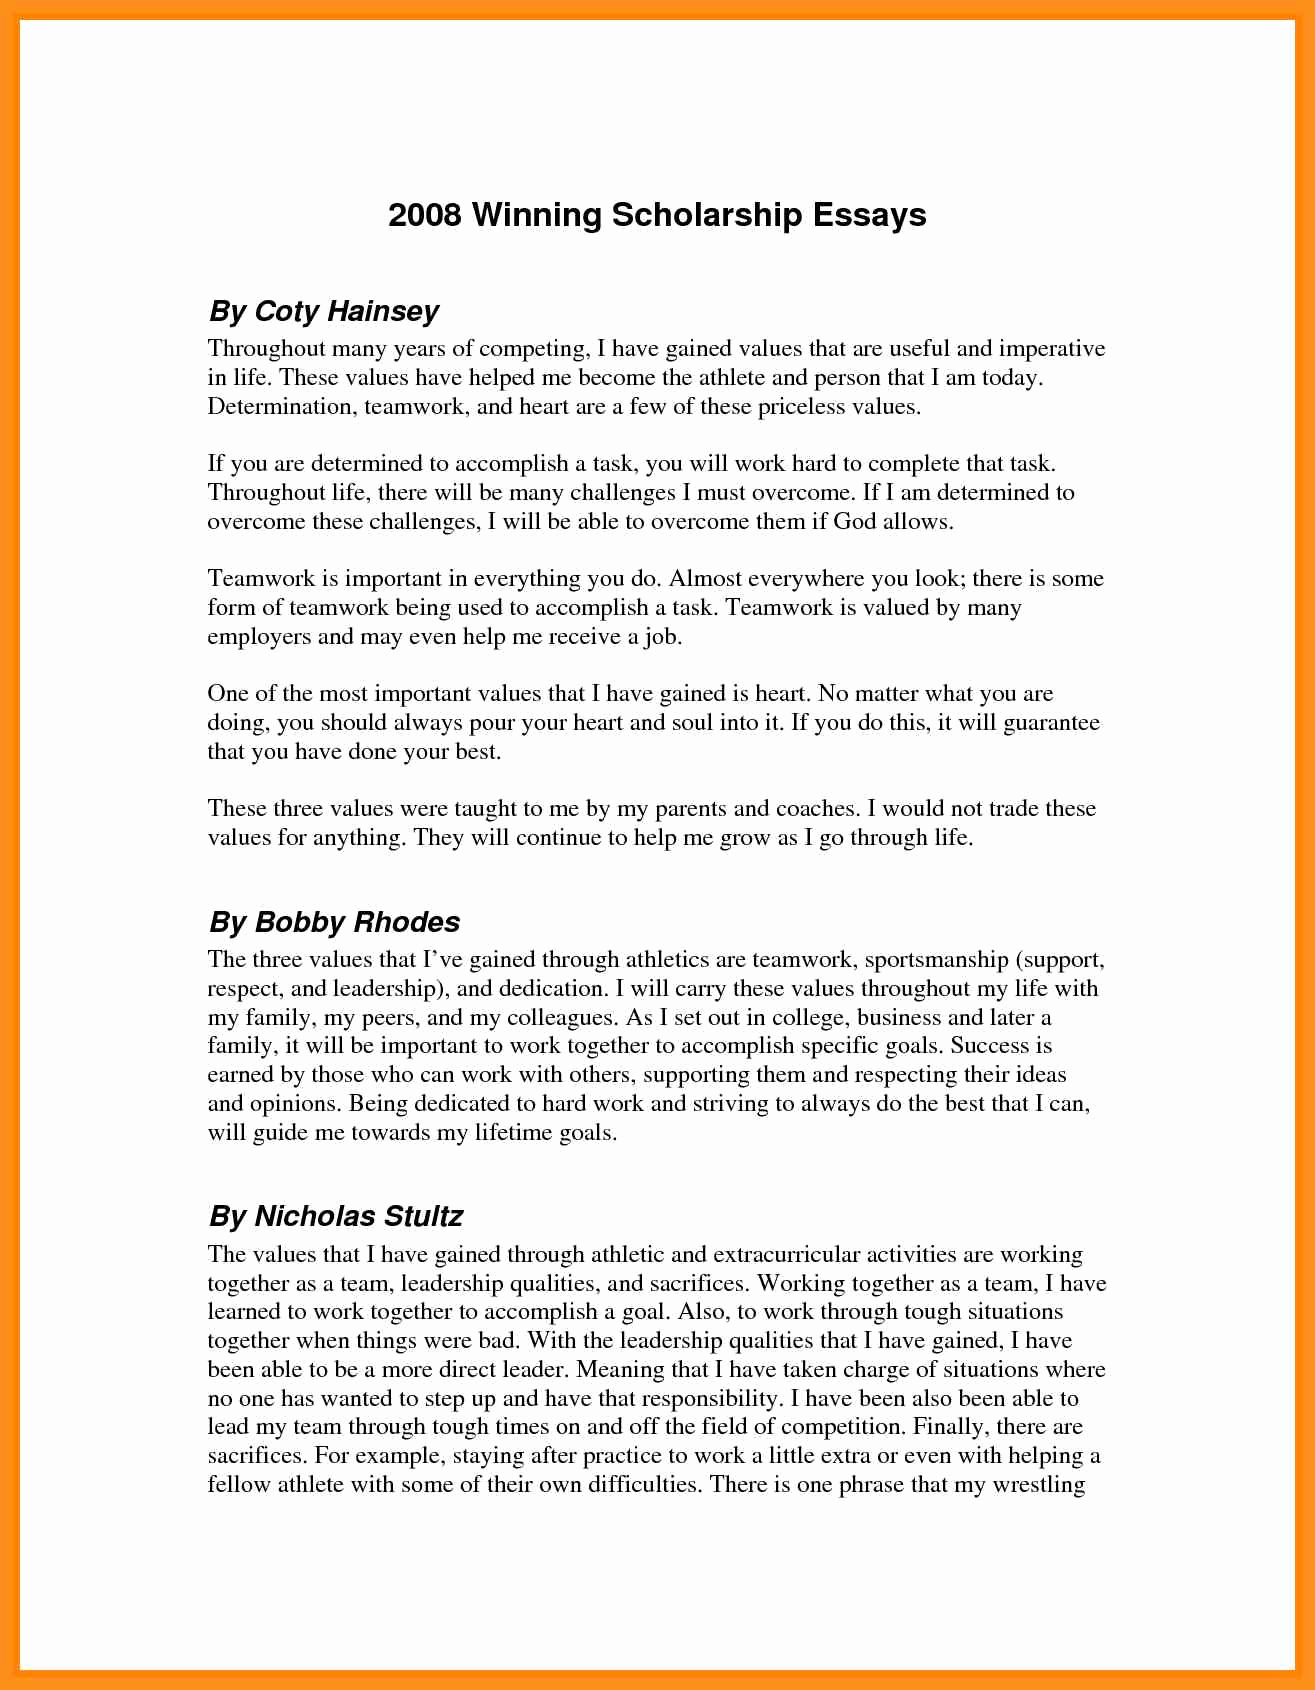 008 Why I Deserve This Scholarshipssayxamples Of Winning Resume Financi Pdf Career Goals Nursing About Yourself Financial Need Words Do You Single Mother Top Scholarship Essay How To Write Sample Full